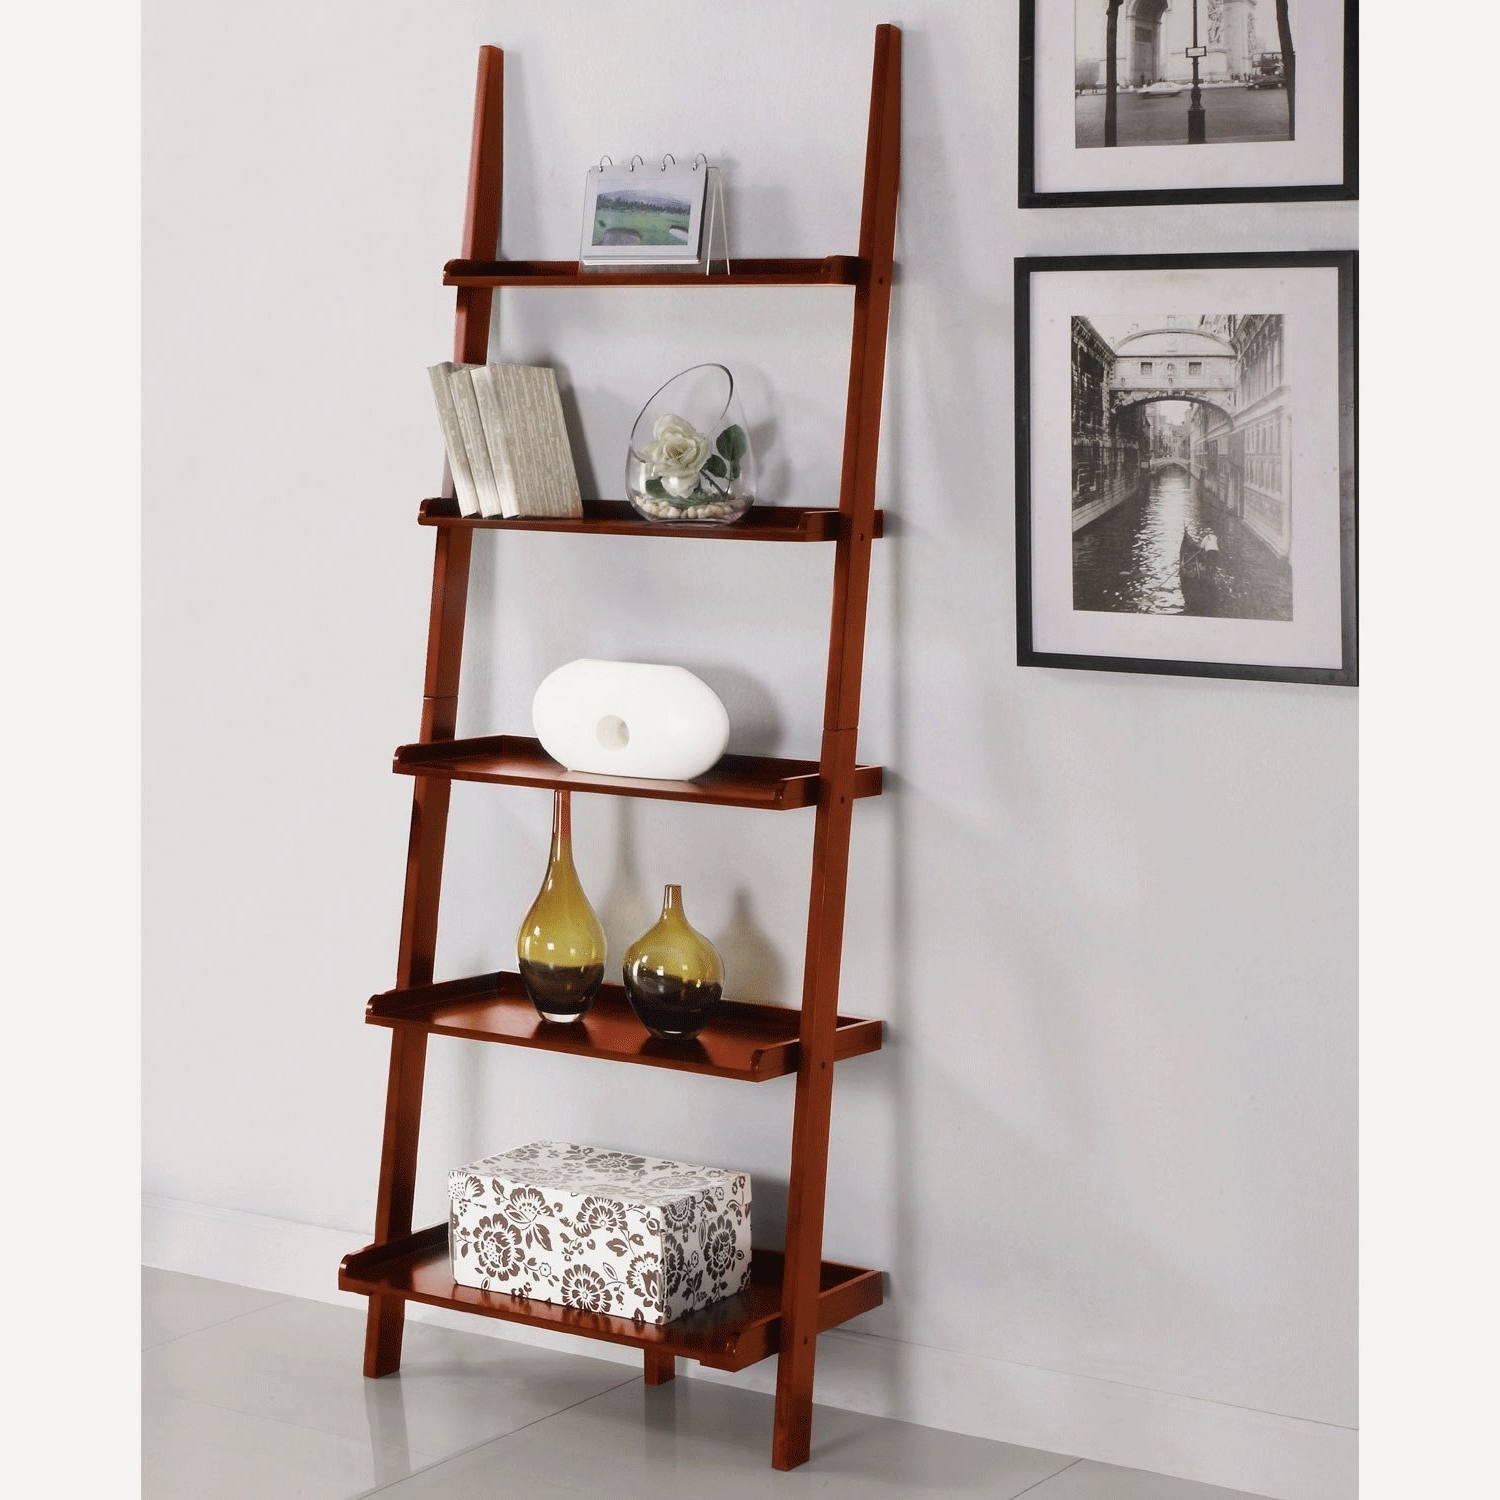 Fashionable Top 22 Ladder Bookcase And Bookshelf Collection For Your Interiors Pertaining To Ladder Bookcases (View 4 of 15)